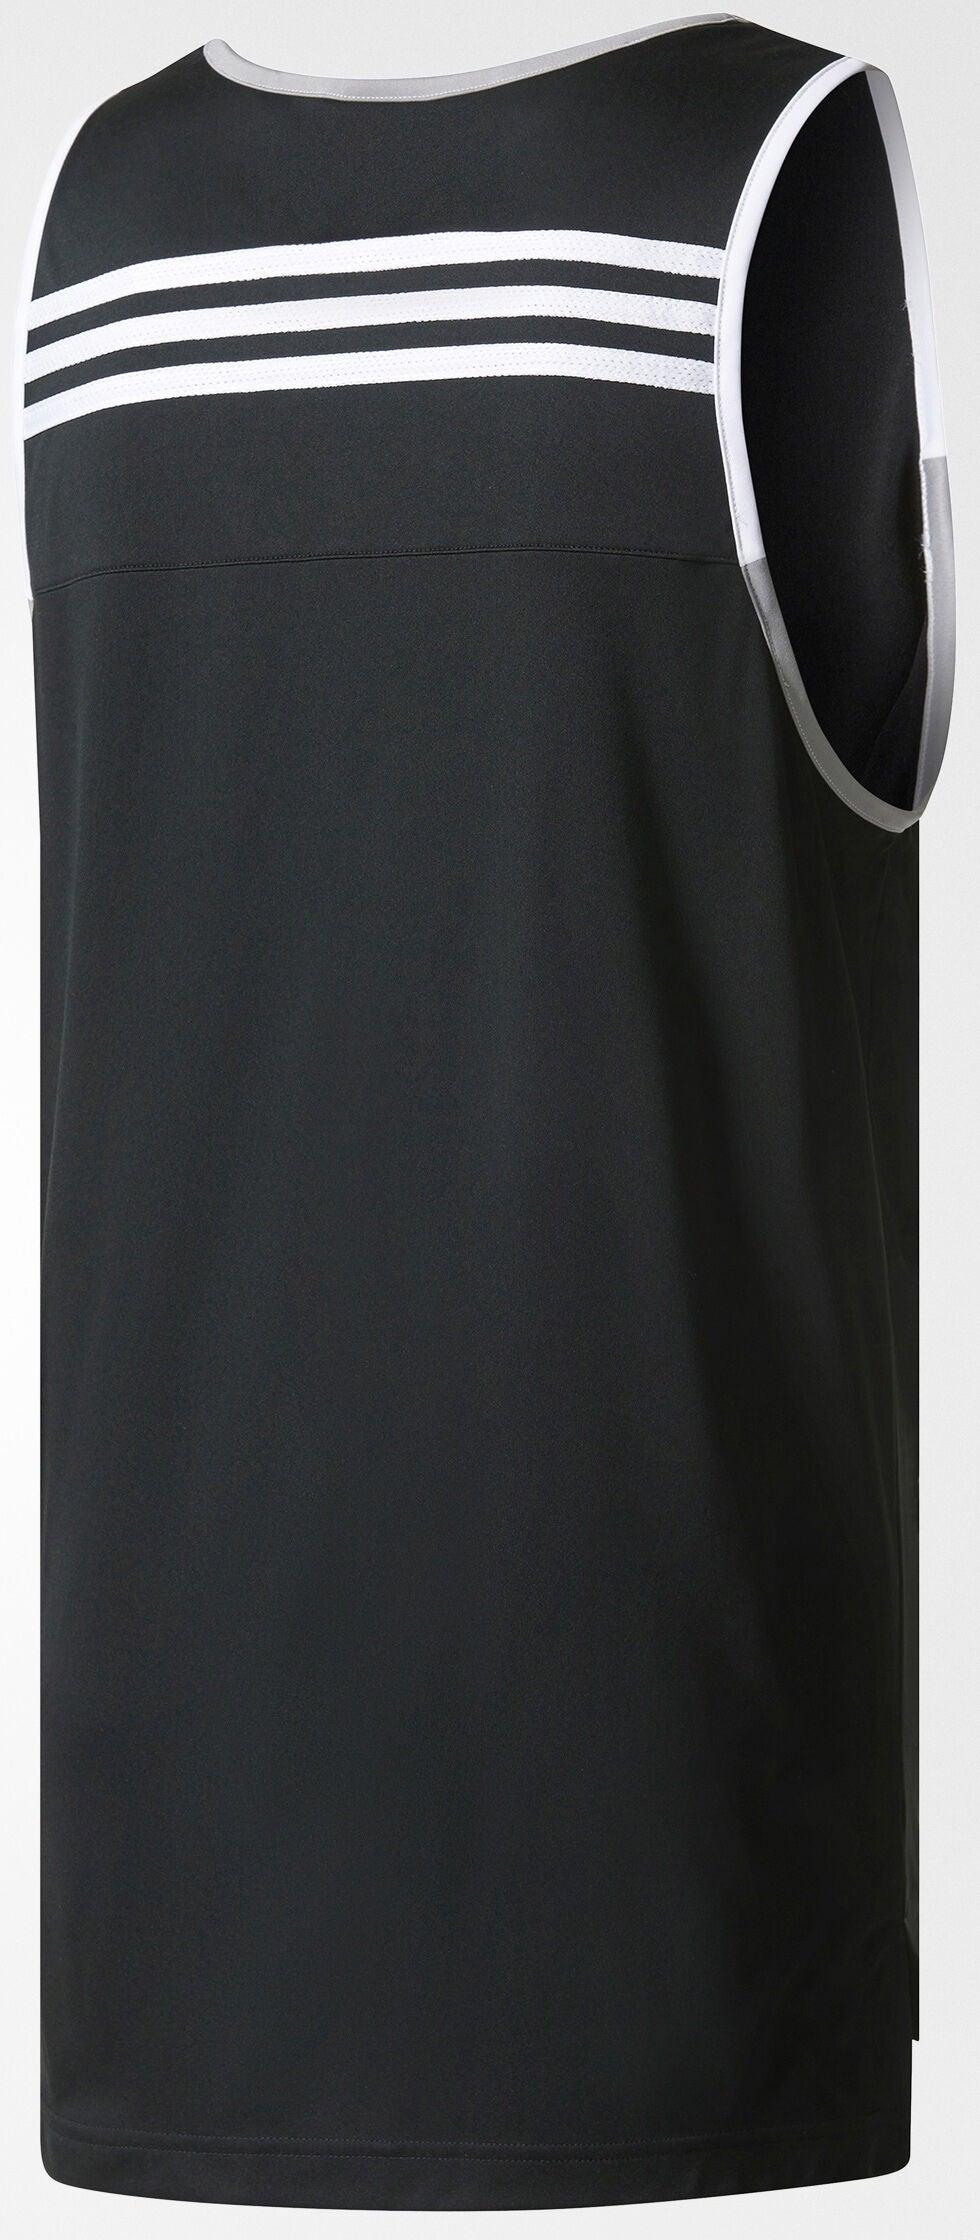 Adidas Commander Basketball Jersey - Black/Grey/White